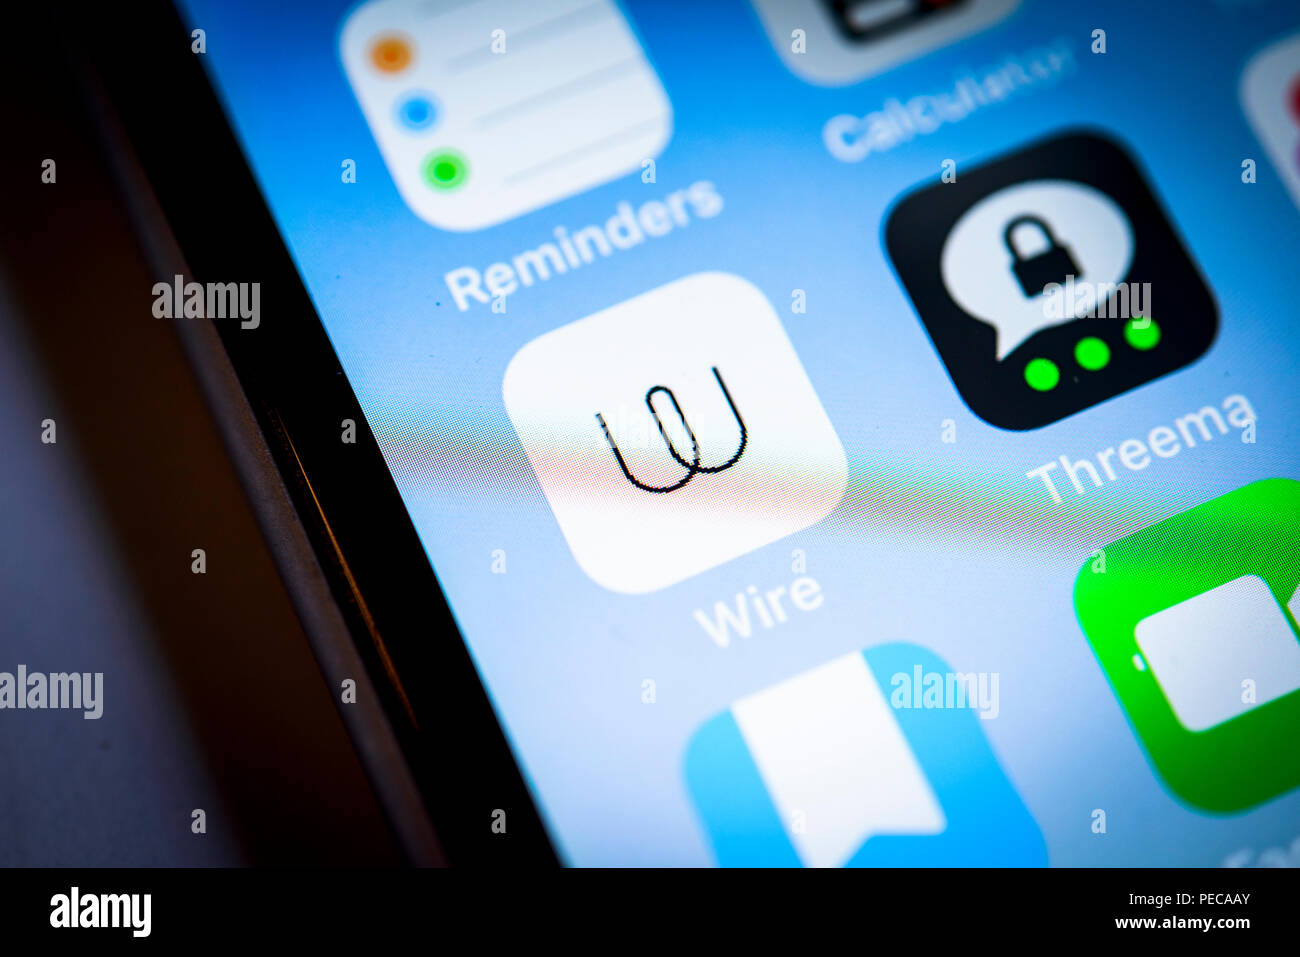 Wire, Threema, secure messenger app icon on iPhone, iOS, smartphone screen, display, close-up, detail, Germany - Stock Image